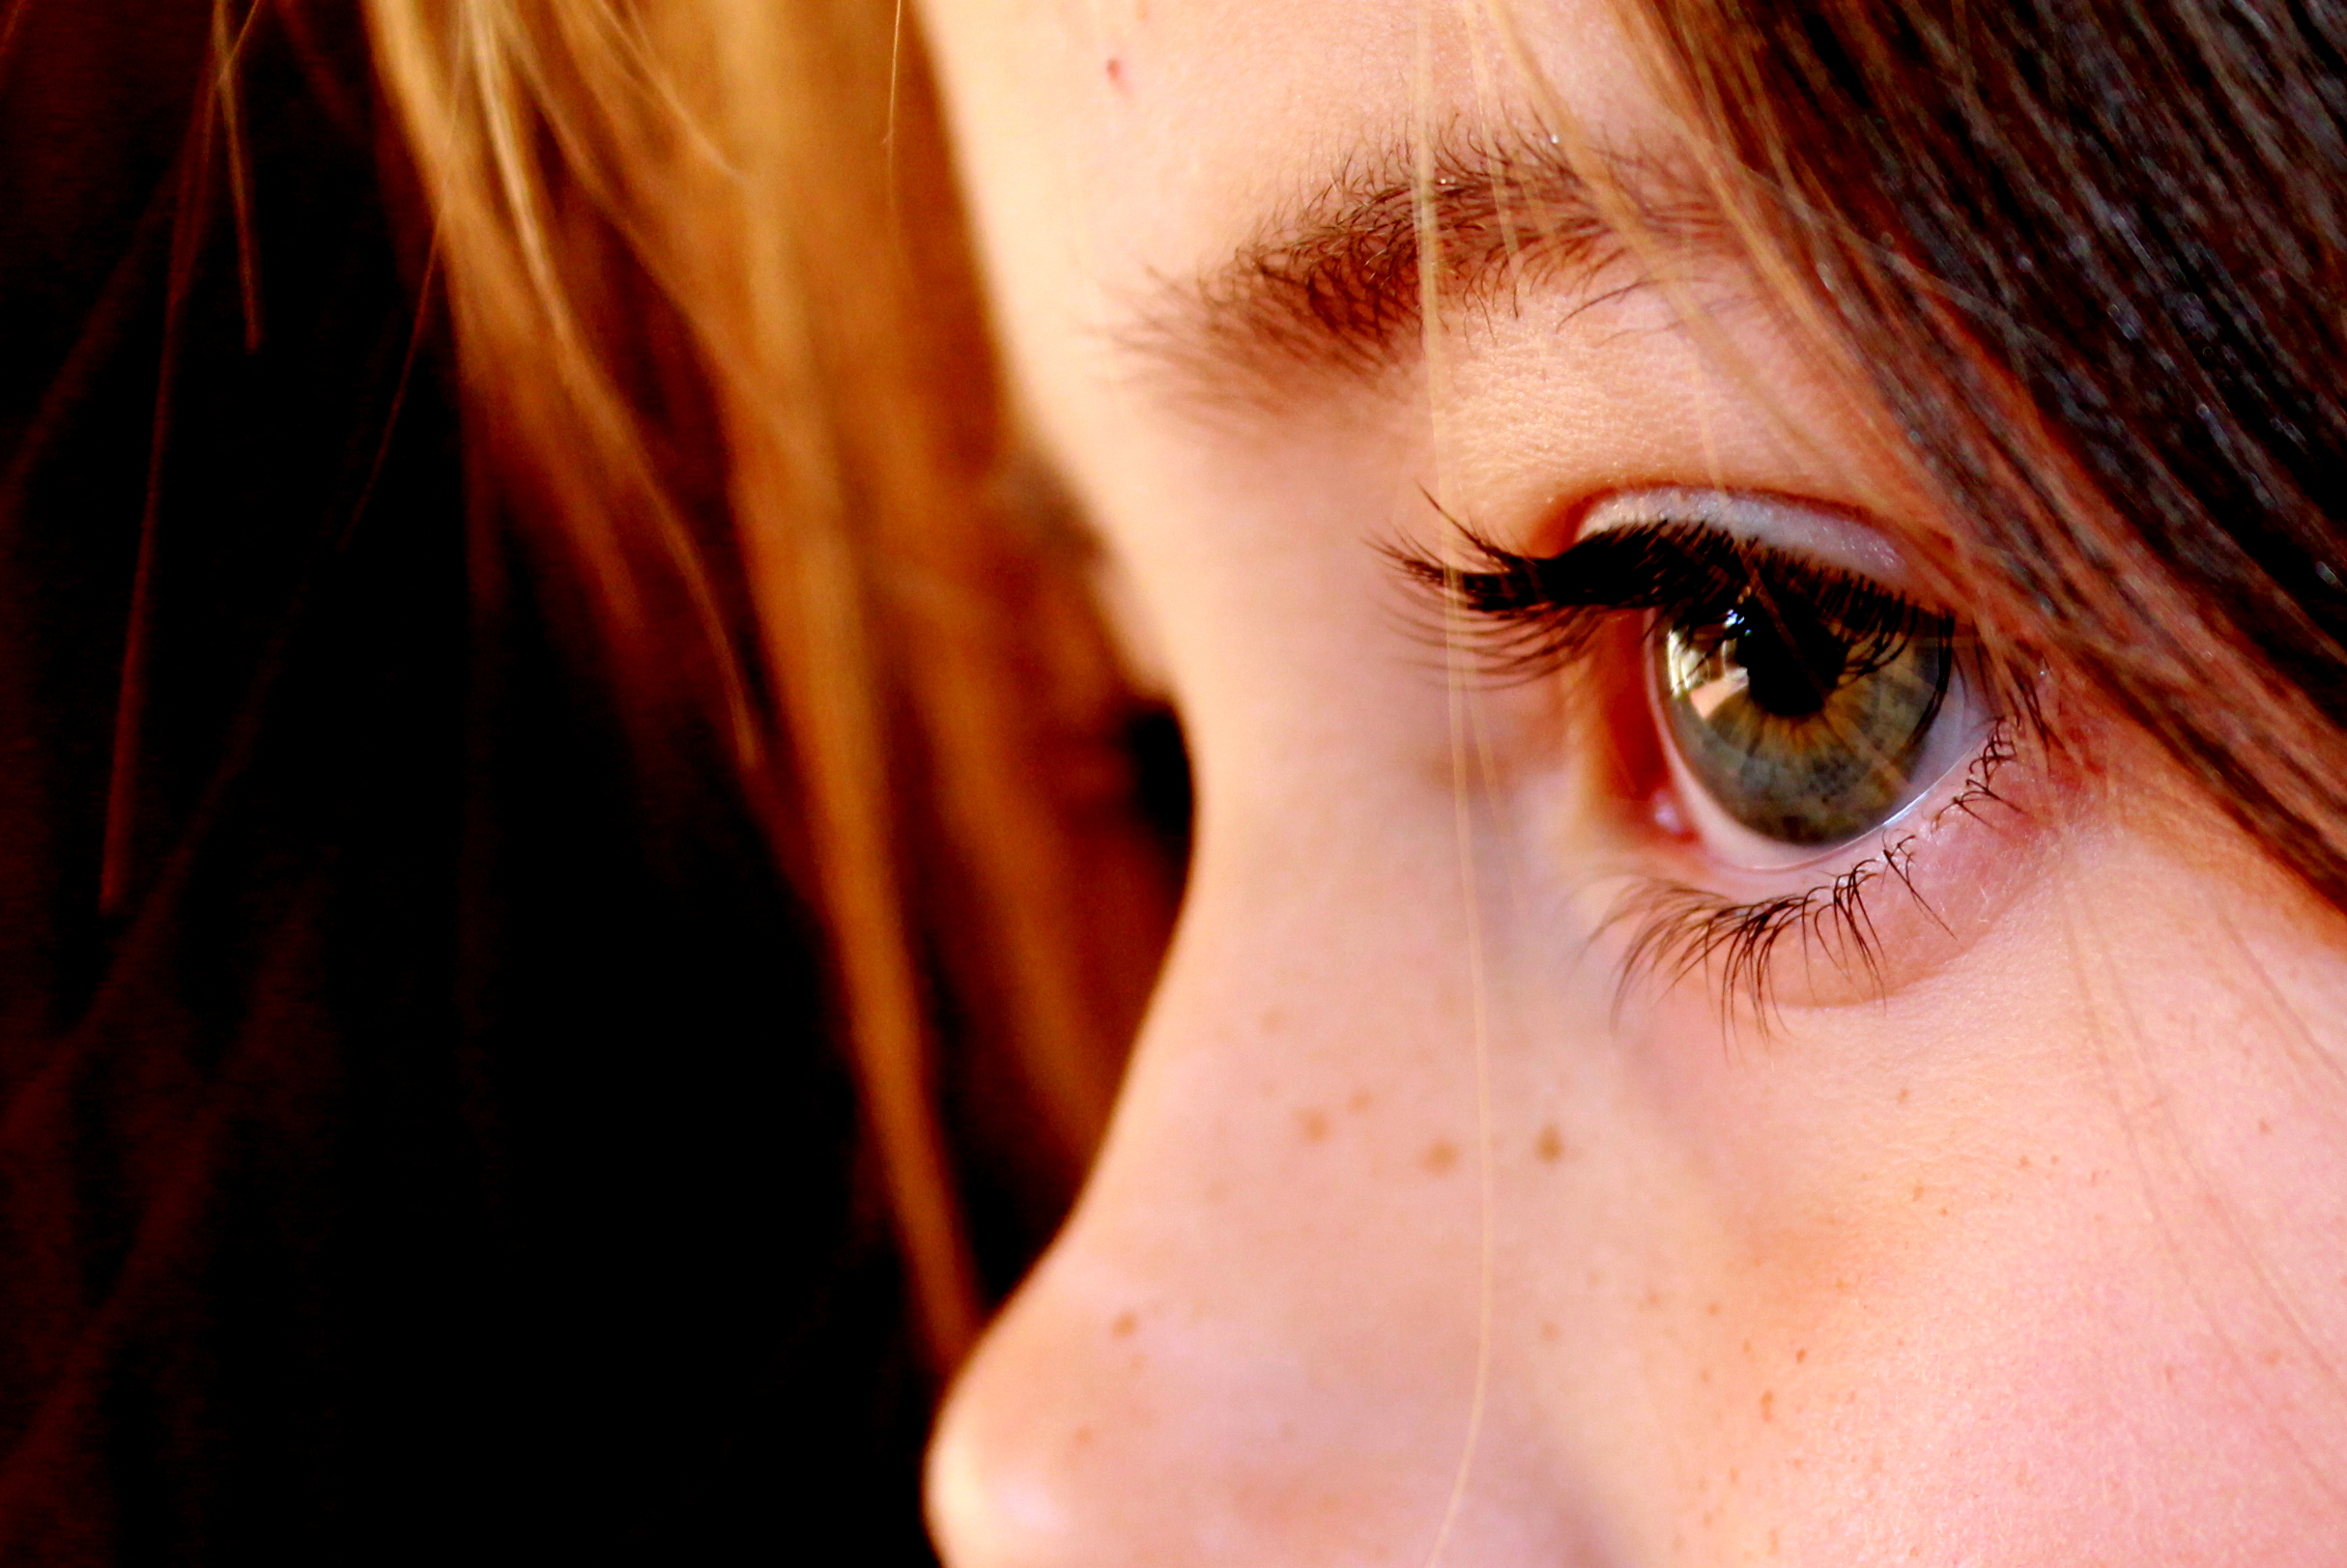 5 Tips For Dealing With Childhood Trauma